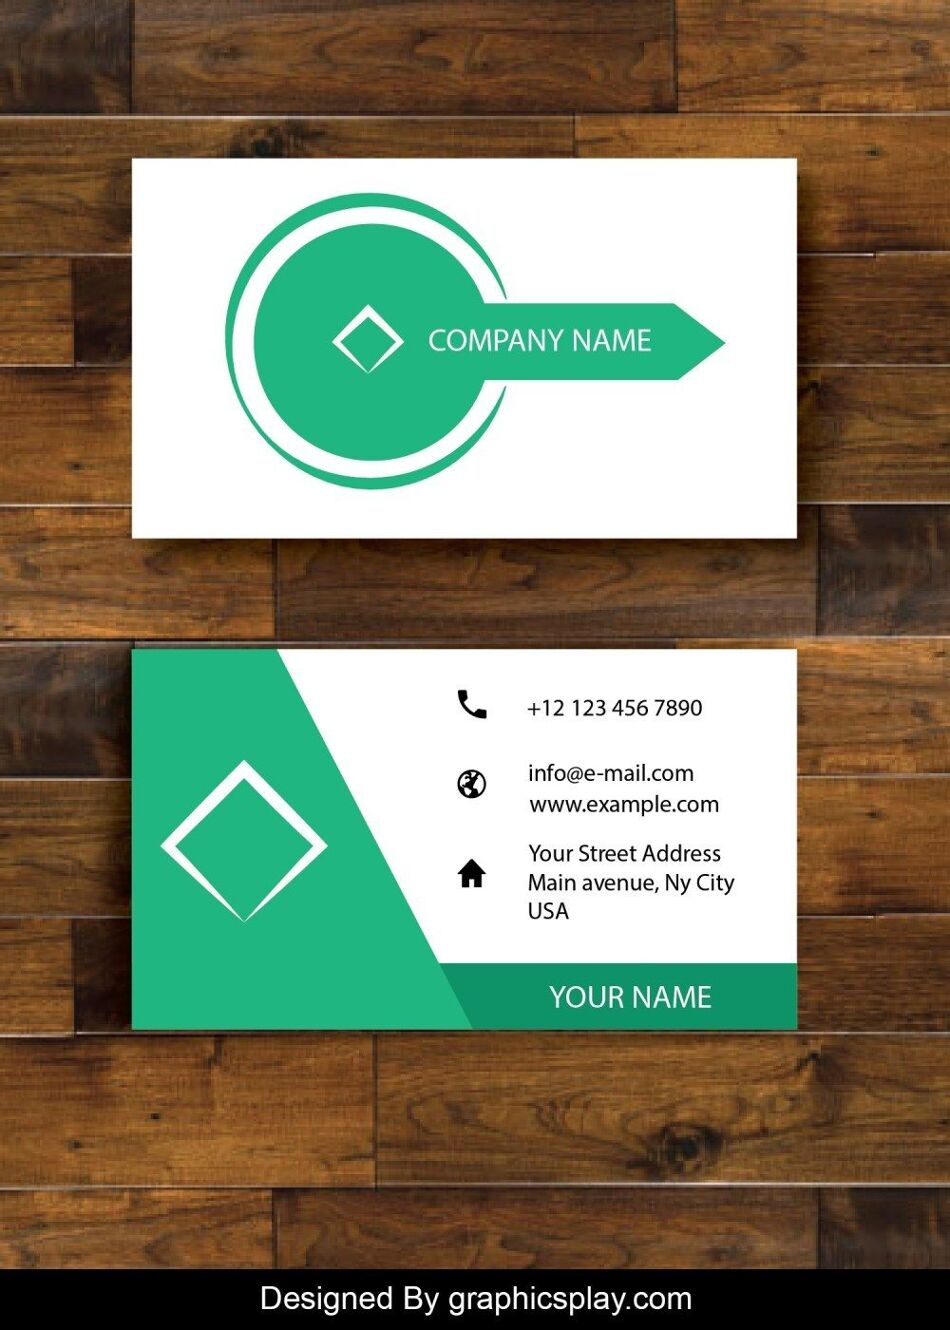 Business Card Design Vector Template - ID 1690 1